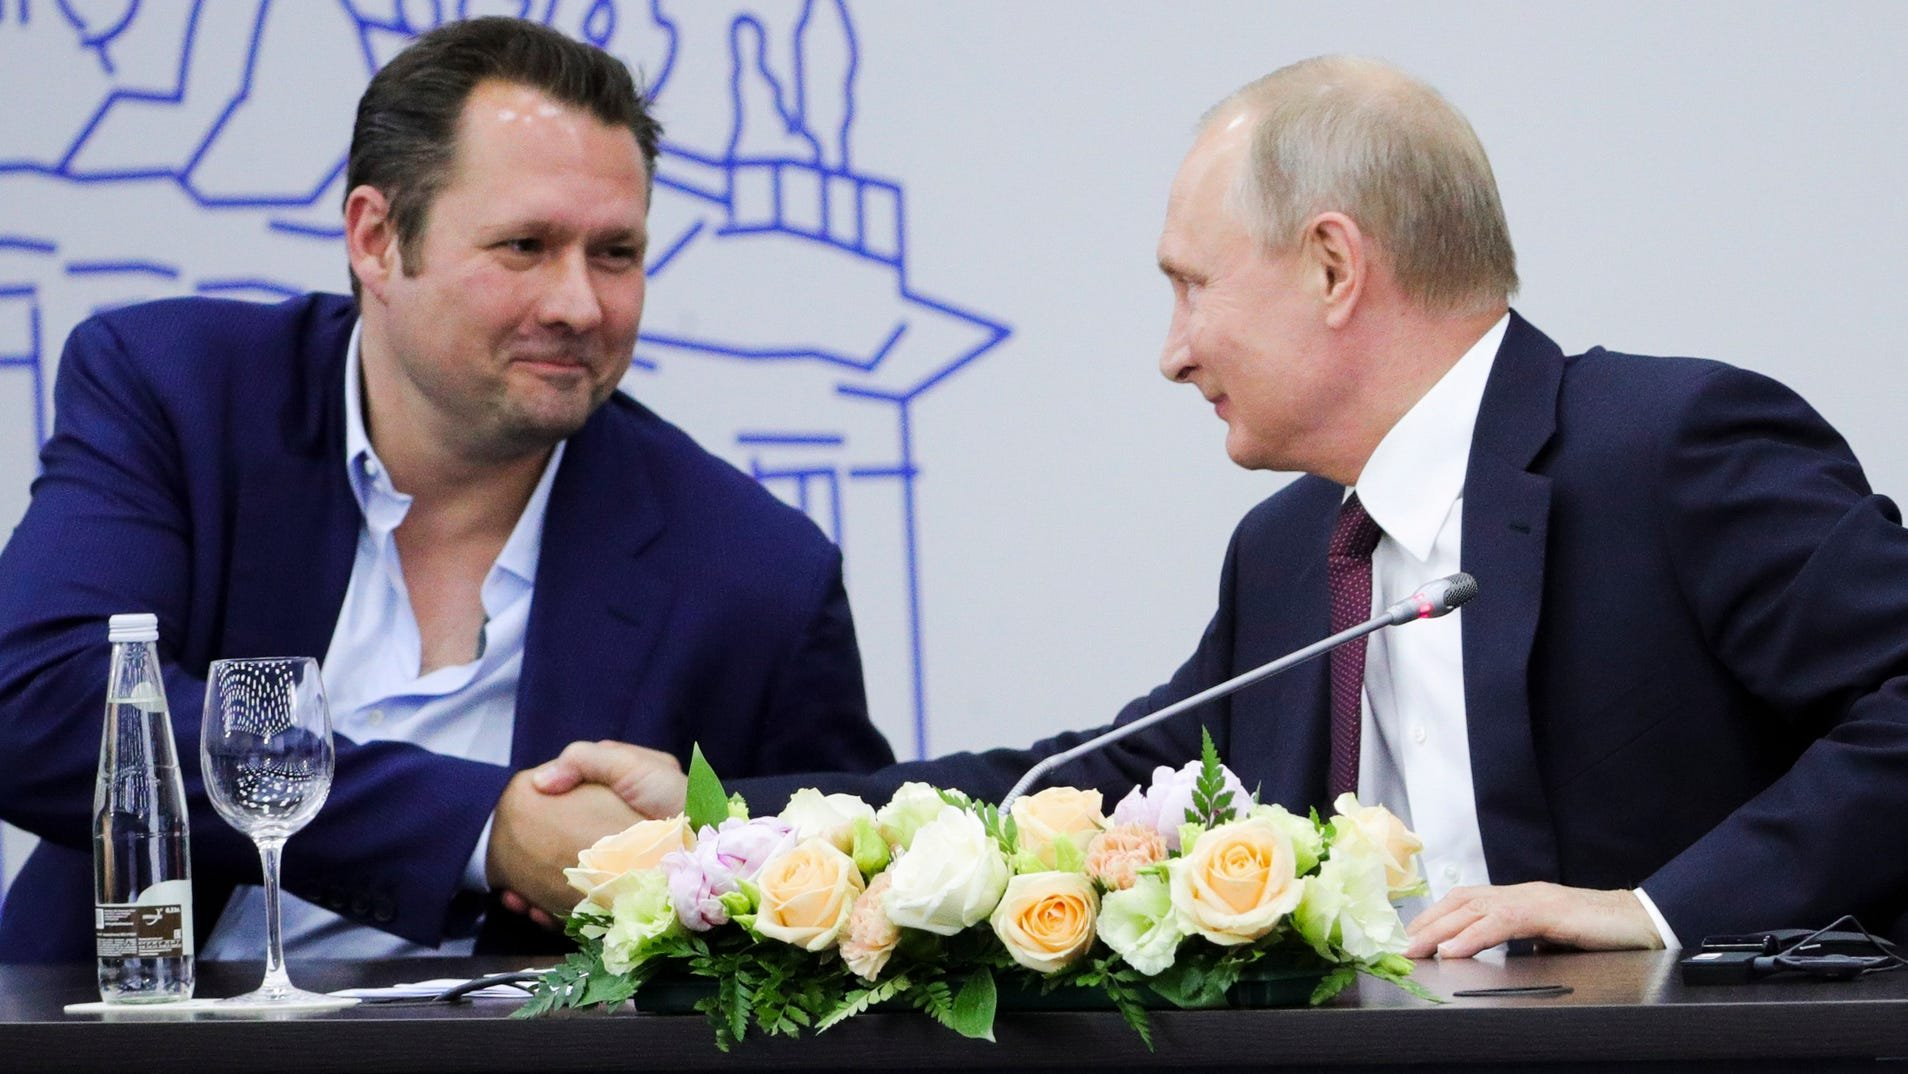 Hyperloop Transportation Technologies co-founder Dirk Alhorn shaking hands with Putin. Did someone say large pool of institutional capital?